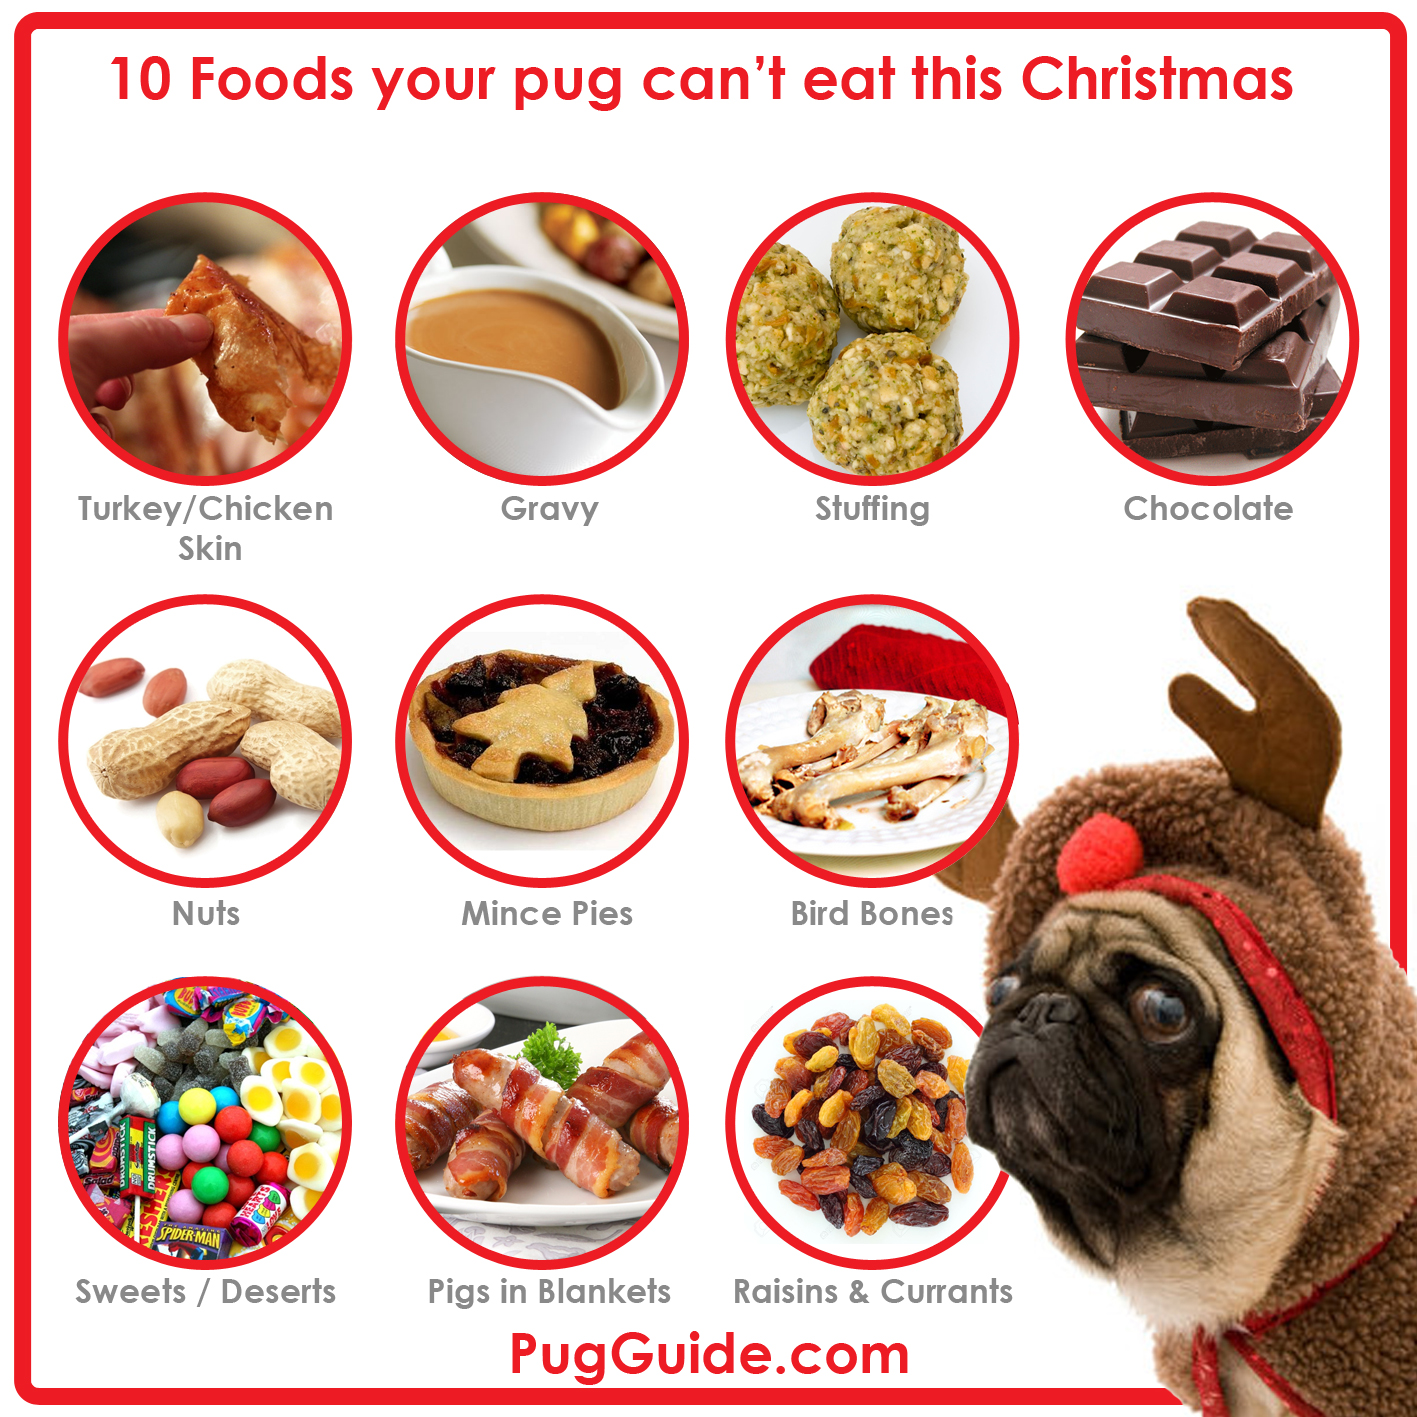 10 Foods Pugs Can't Eat at Christmas